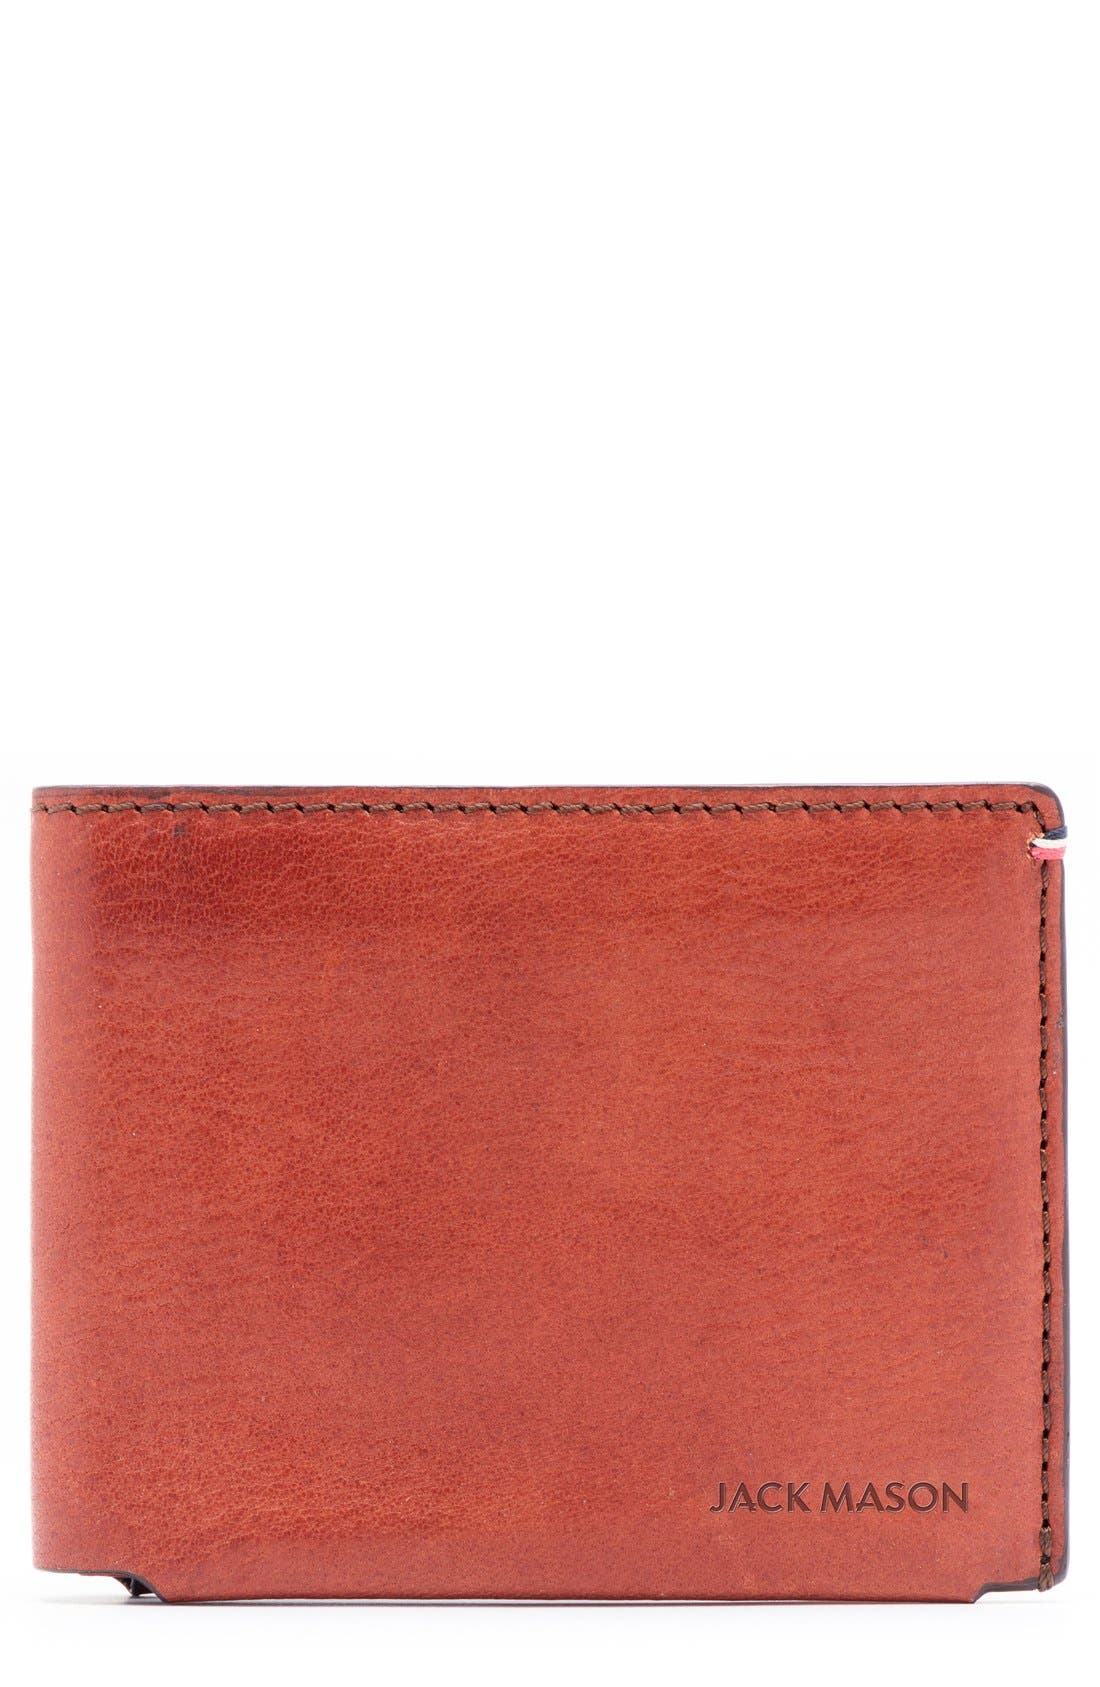 Pebbled Leather Wallet,                             Main thumbnail 1, color,                             800